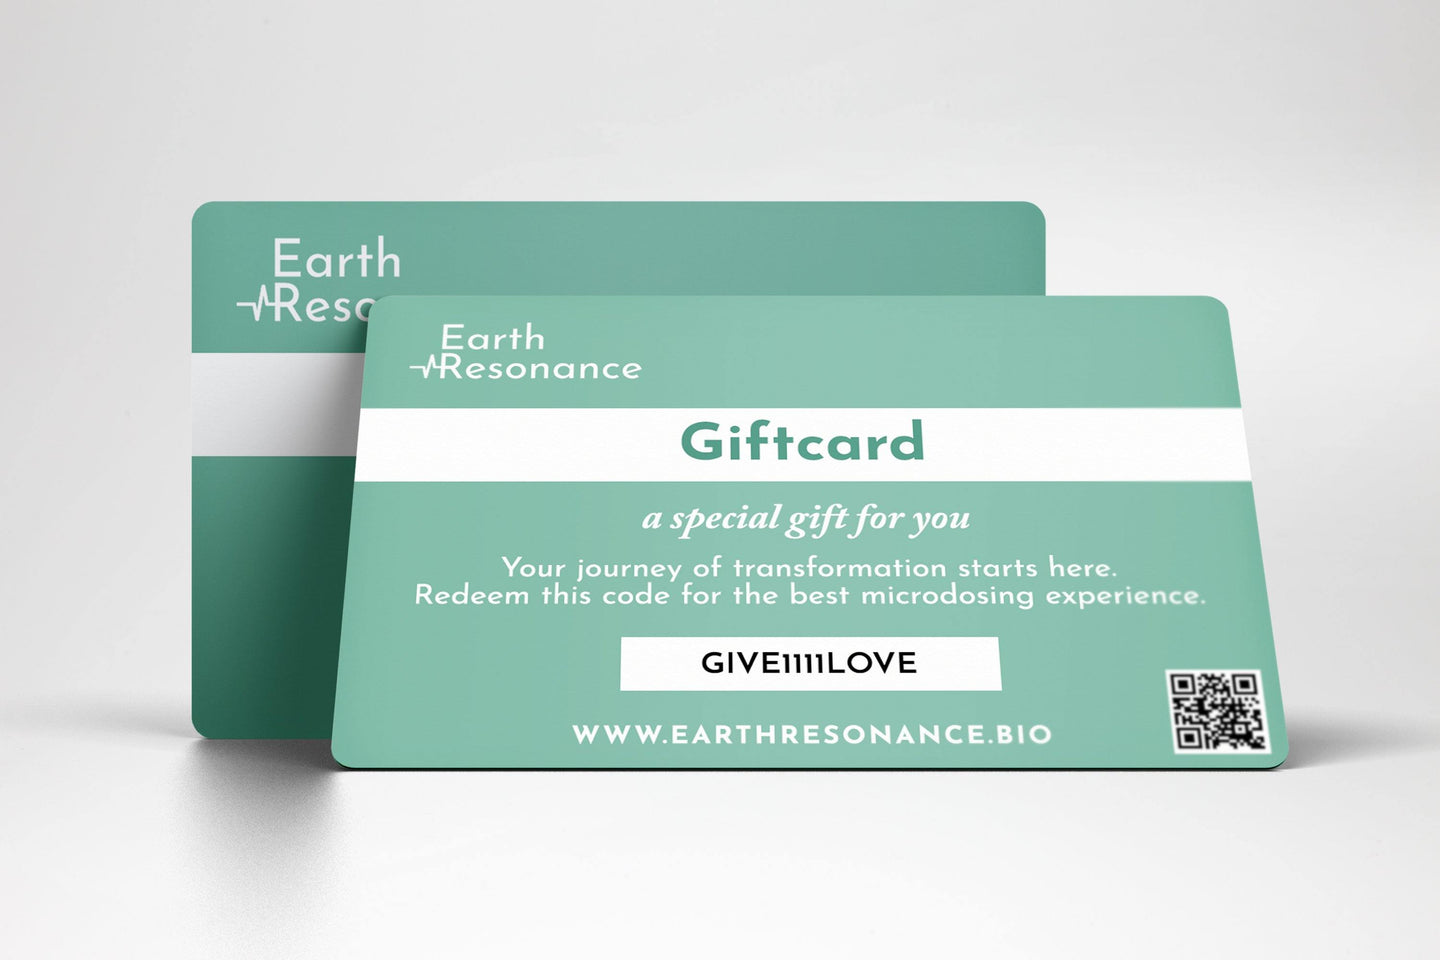 Earth Resonance Giftcard - Earth Resonance